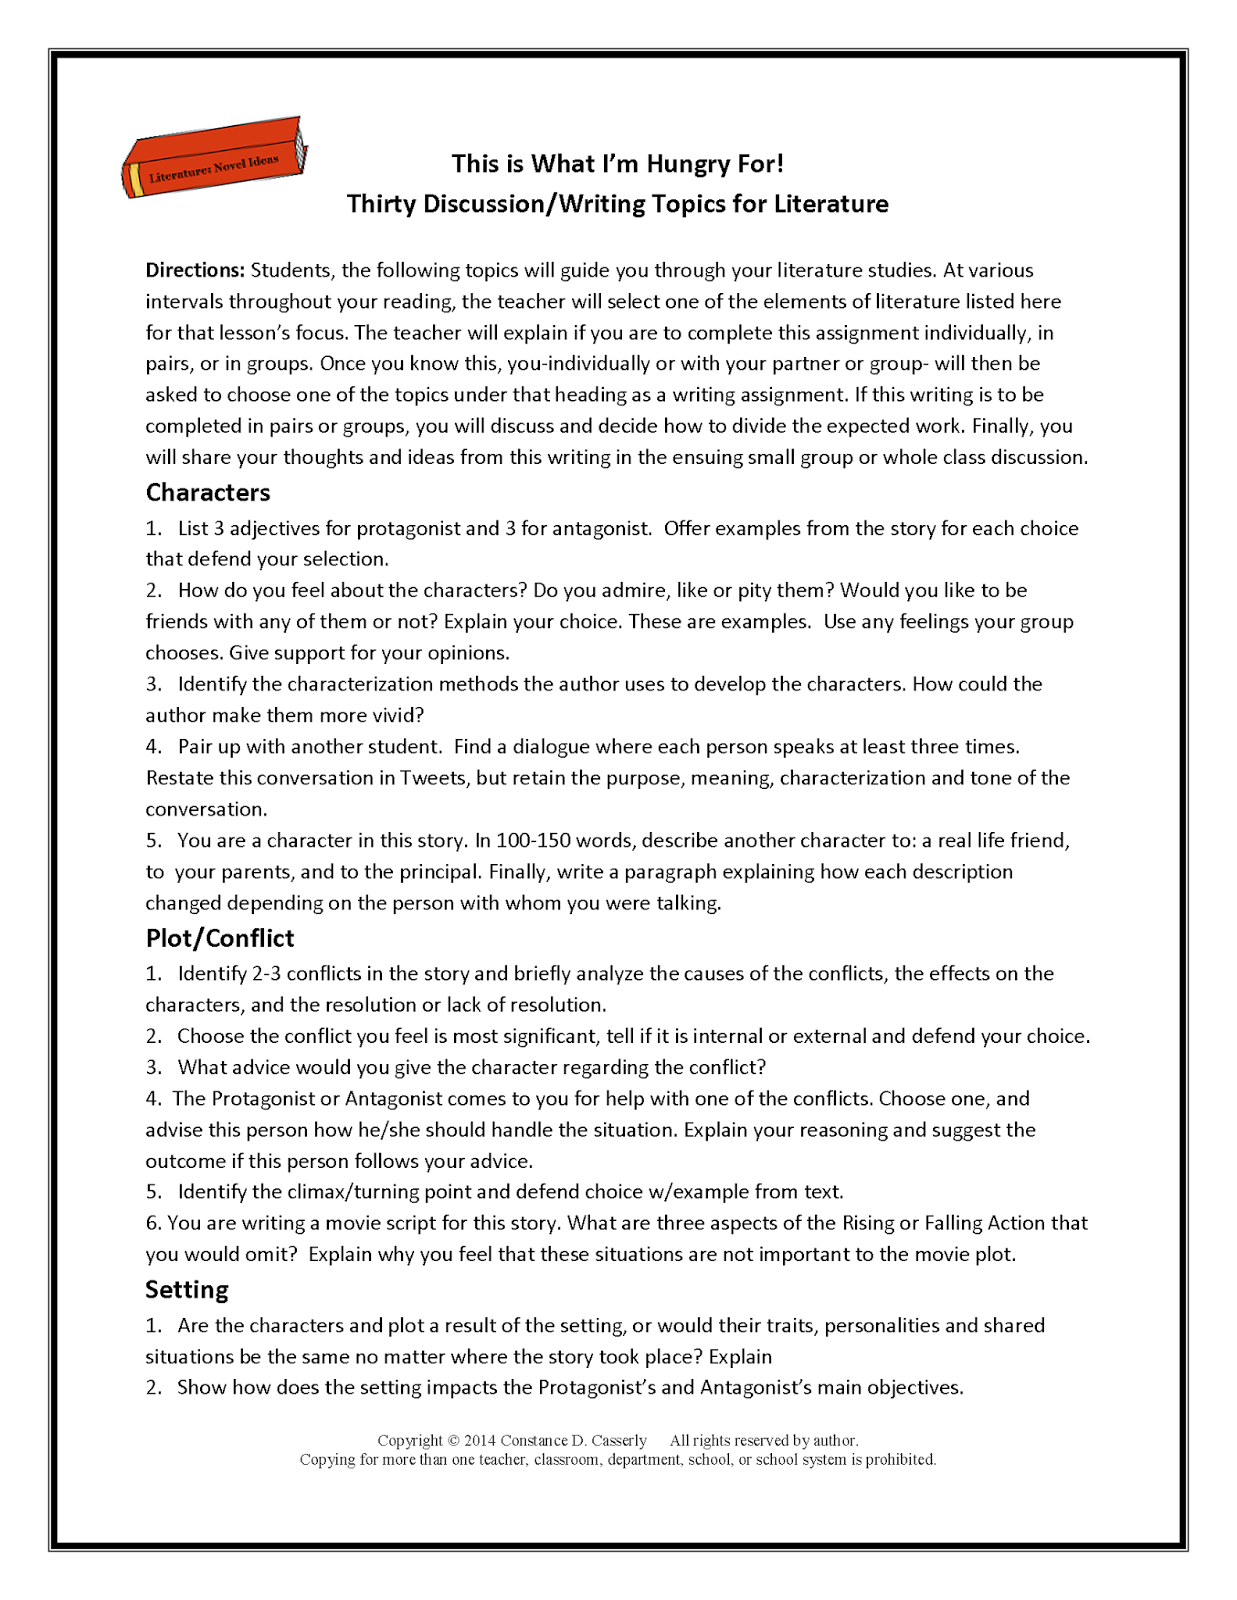 Printables Reading Comprehension Worksheets For Middle School reading comprehension worksheets for middle school abitlikethis 13gt images school